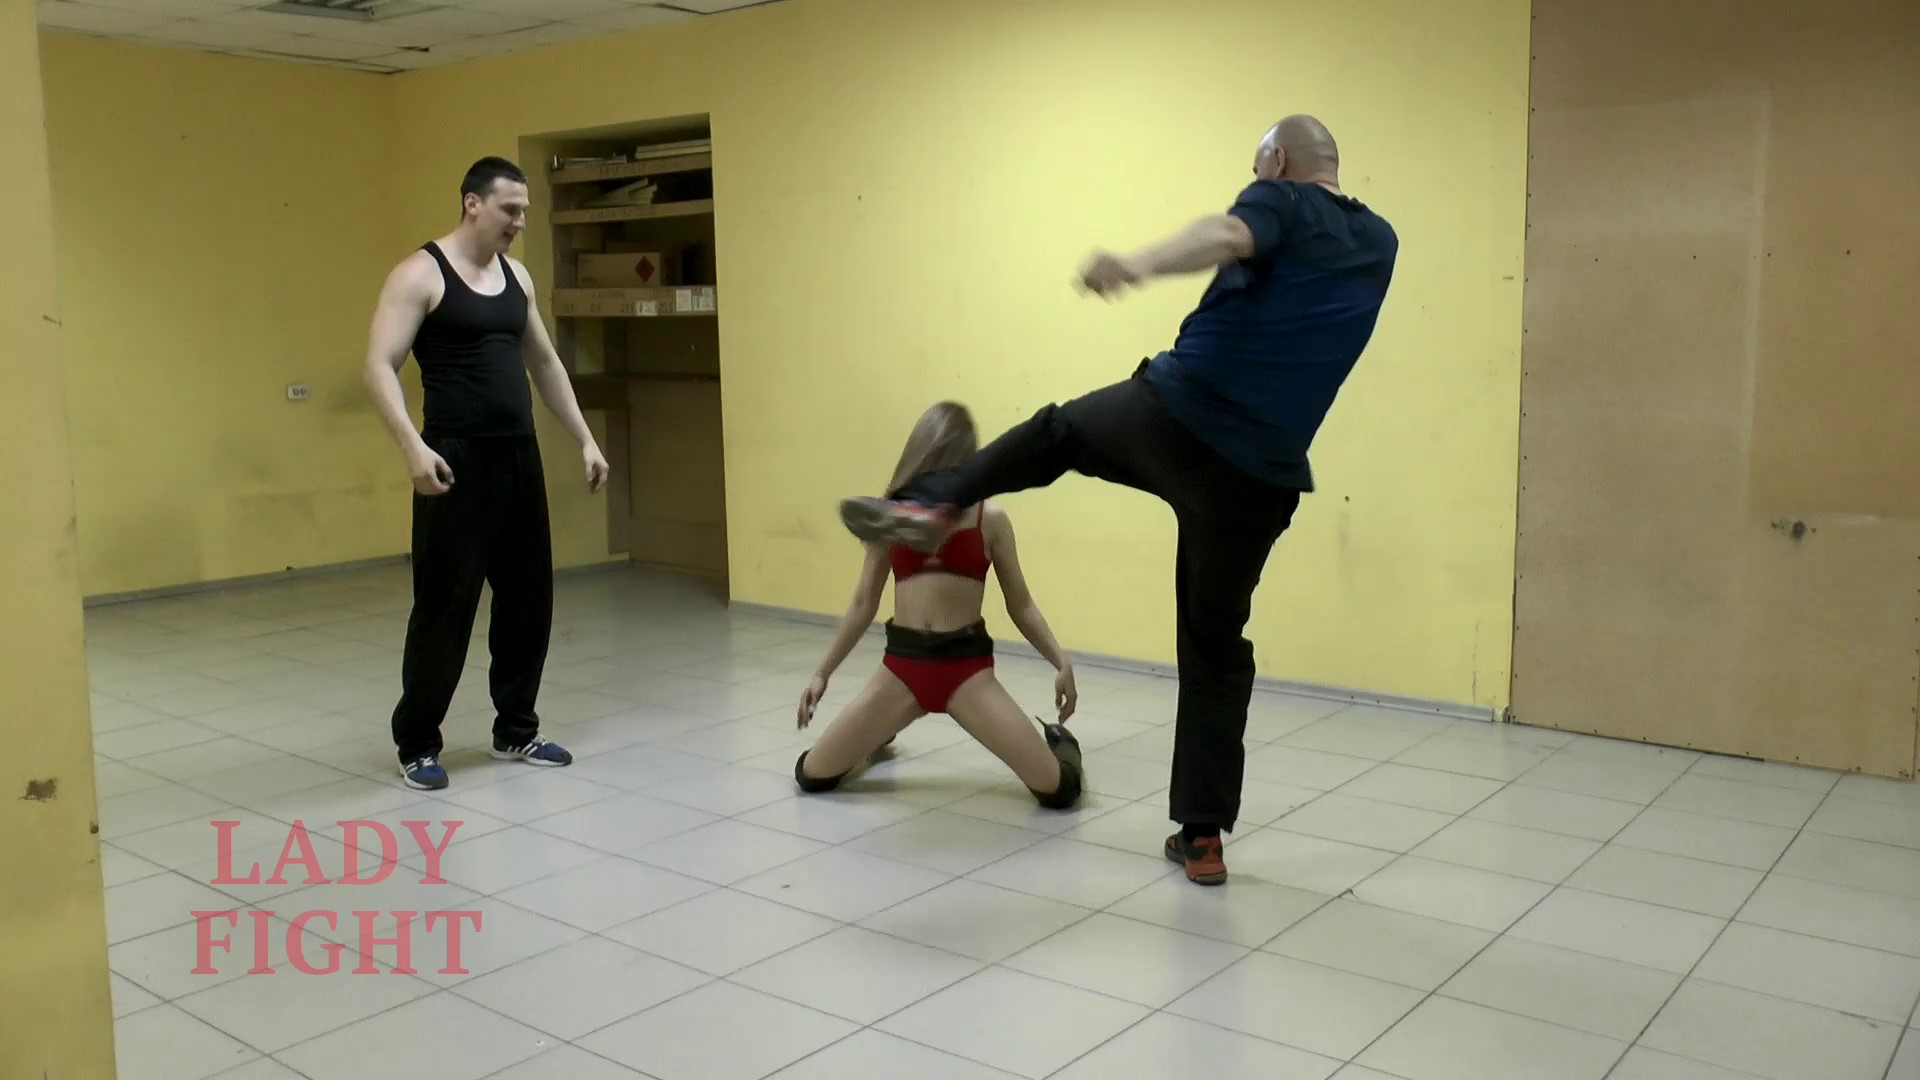 LADYFIGHT-Deadly-Wrestling-For-Lora-90